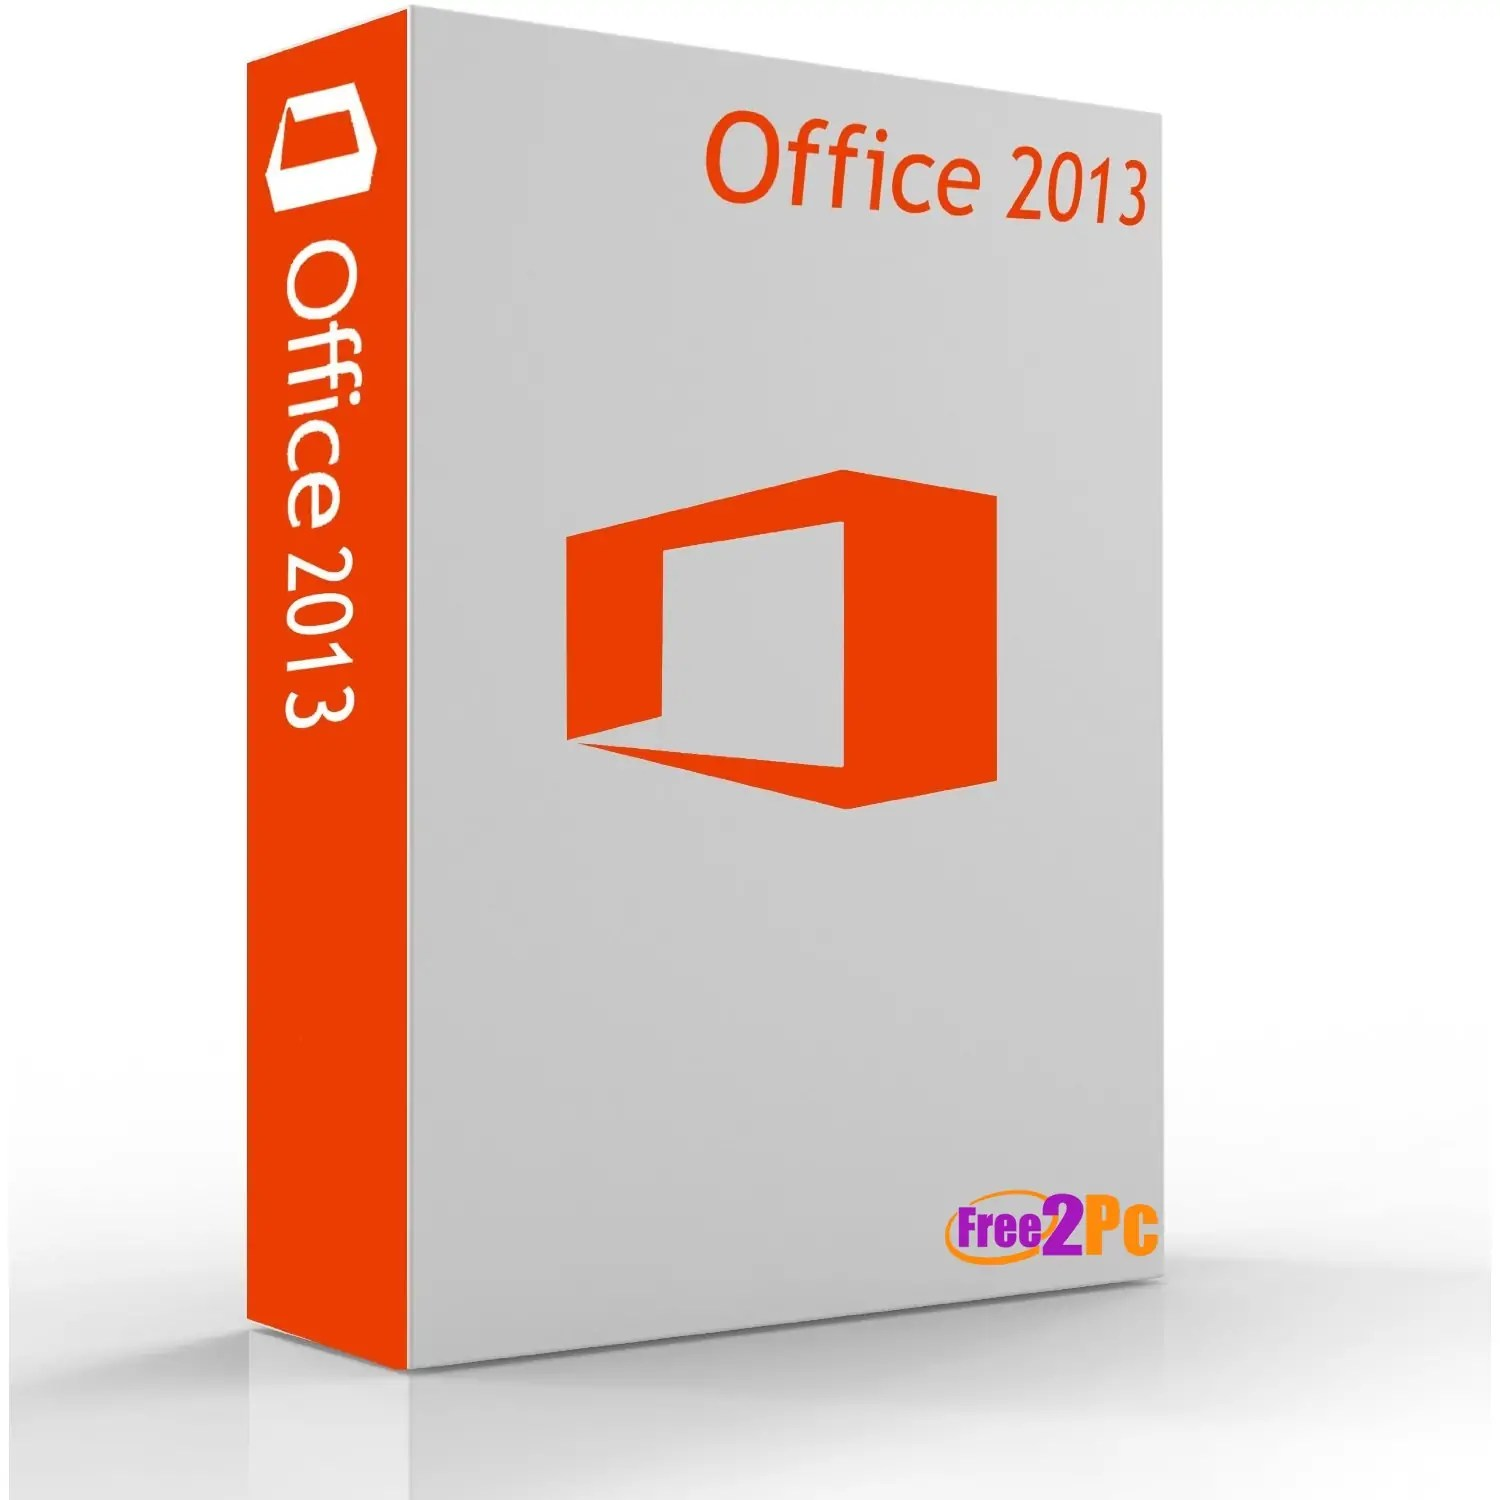 Pack Office Microsoft 2013 Microsoft Office 2013 Product Key With Crack Plus Keygen Number